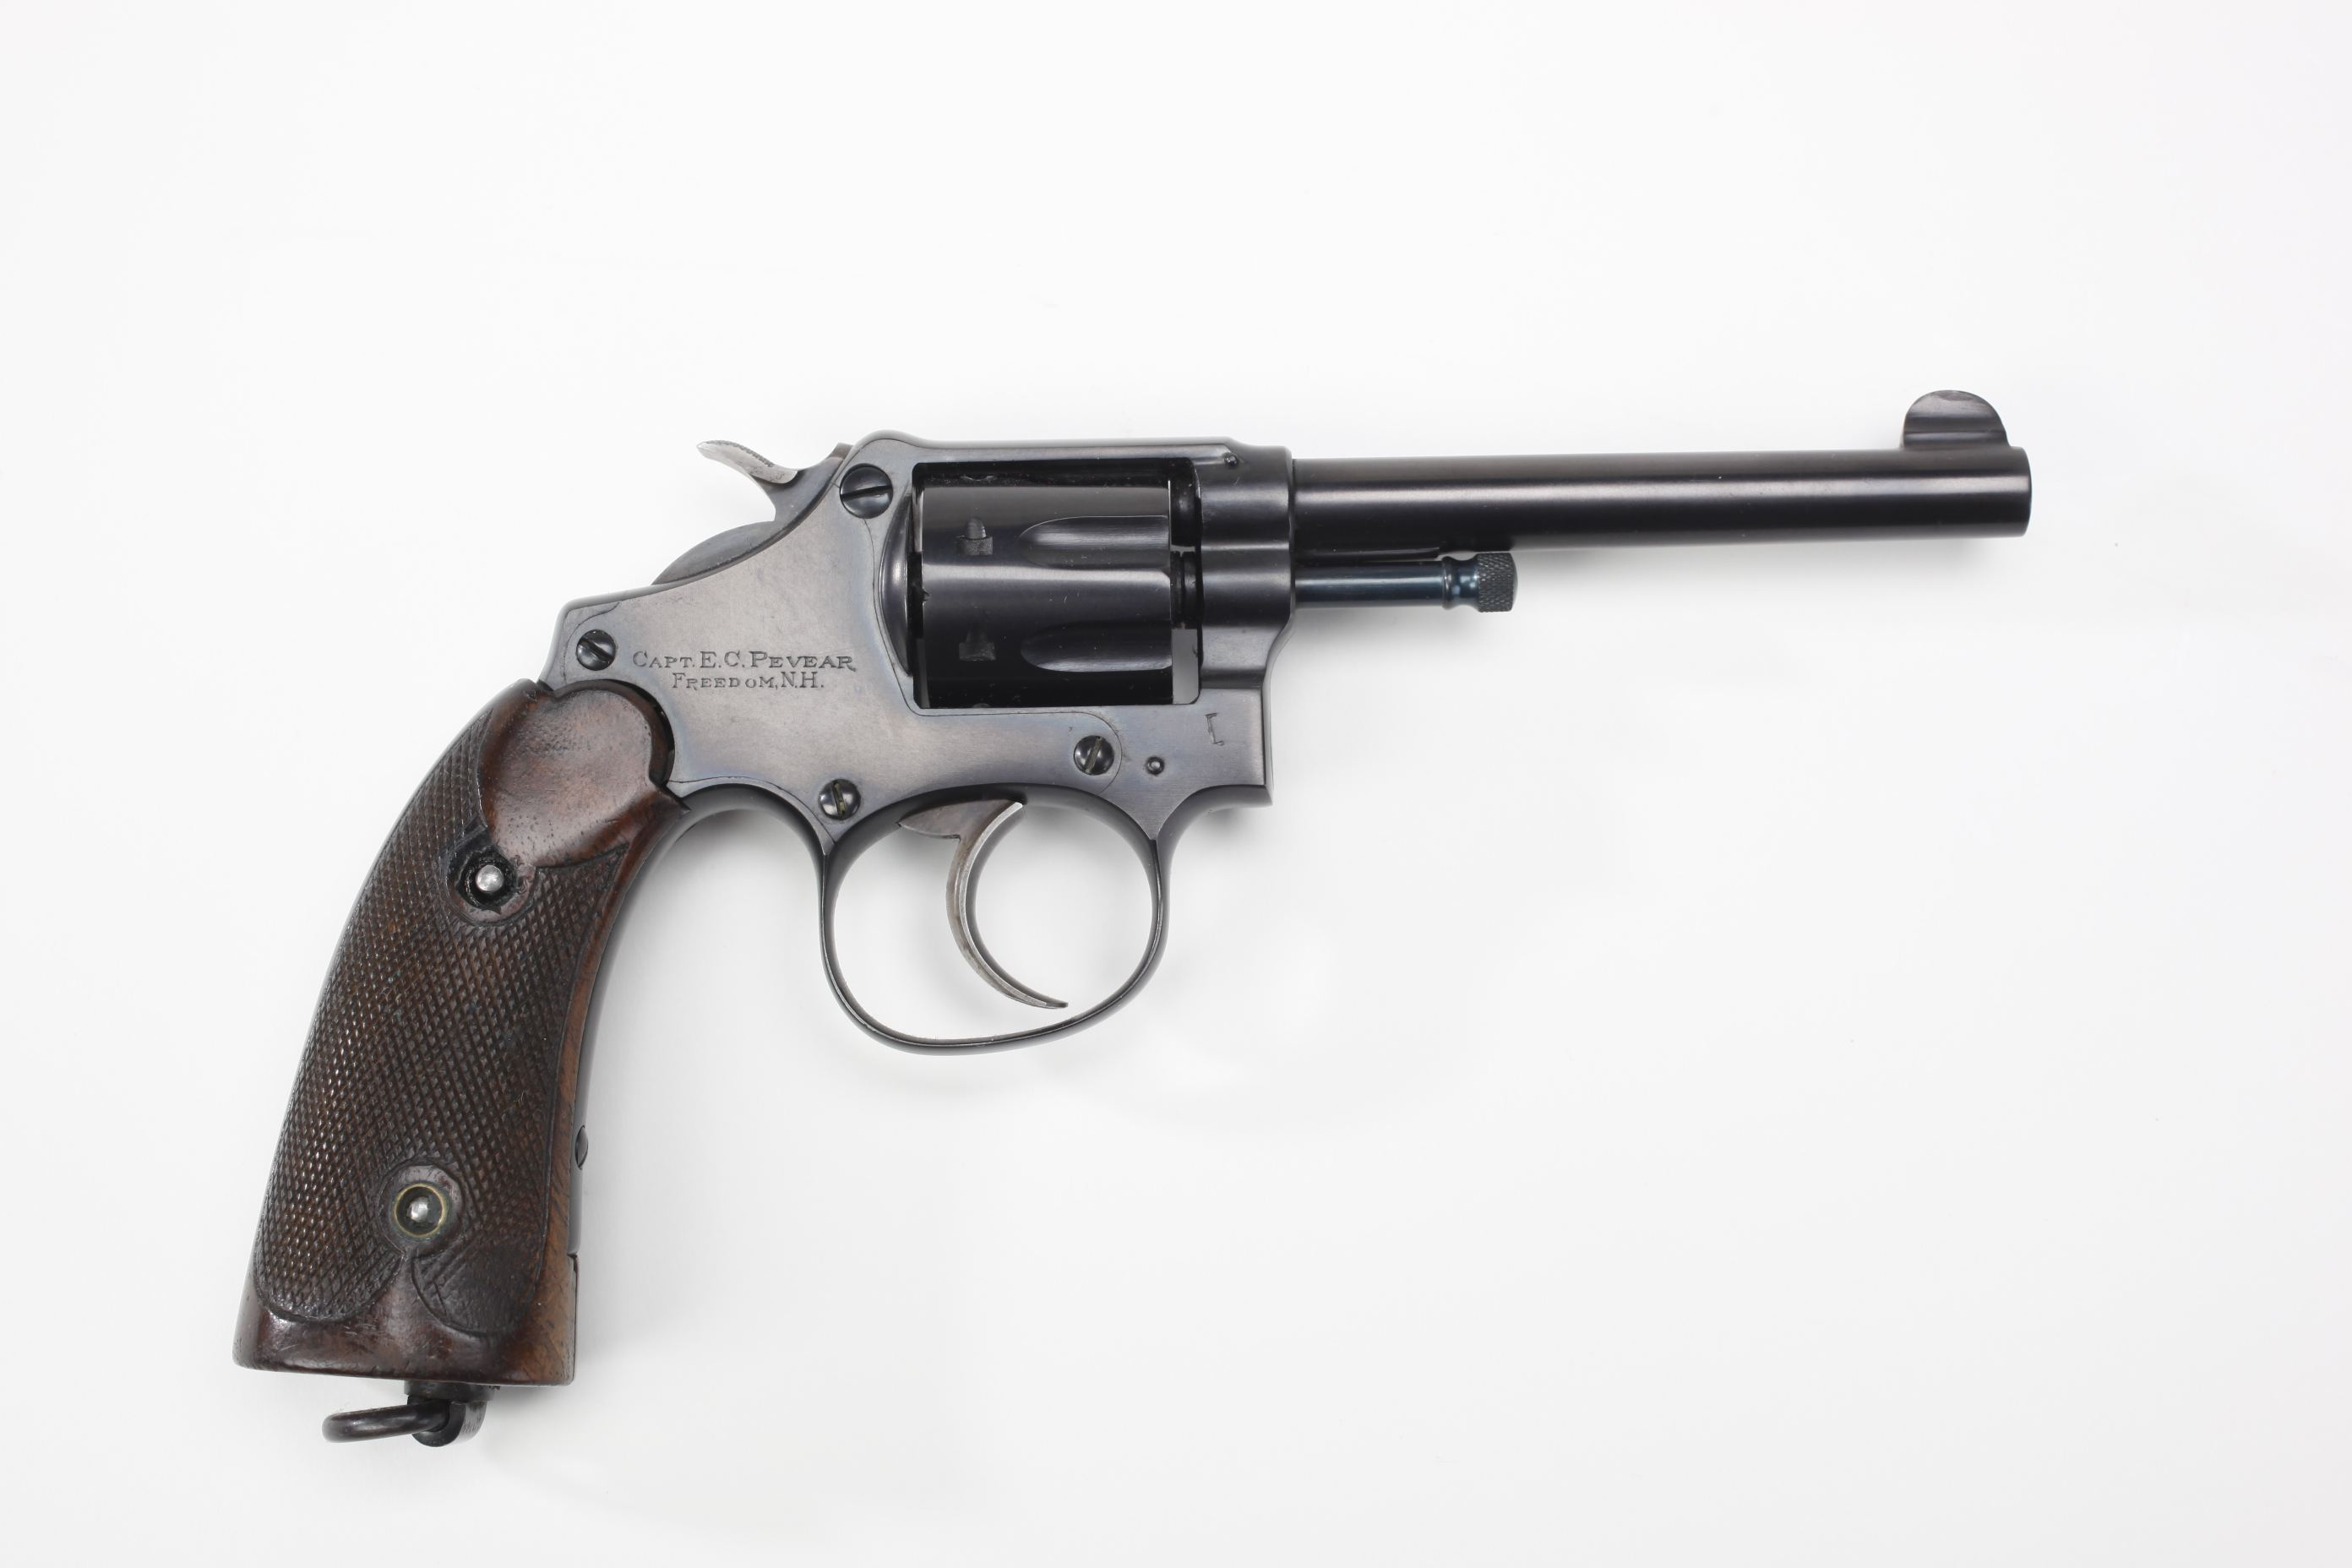 Smith & Wesson 22 32 Hand Ejector revolver